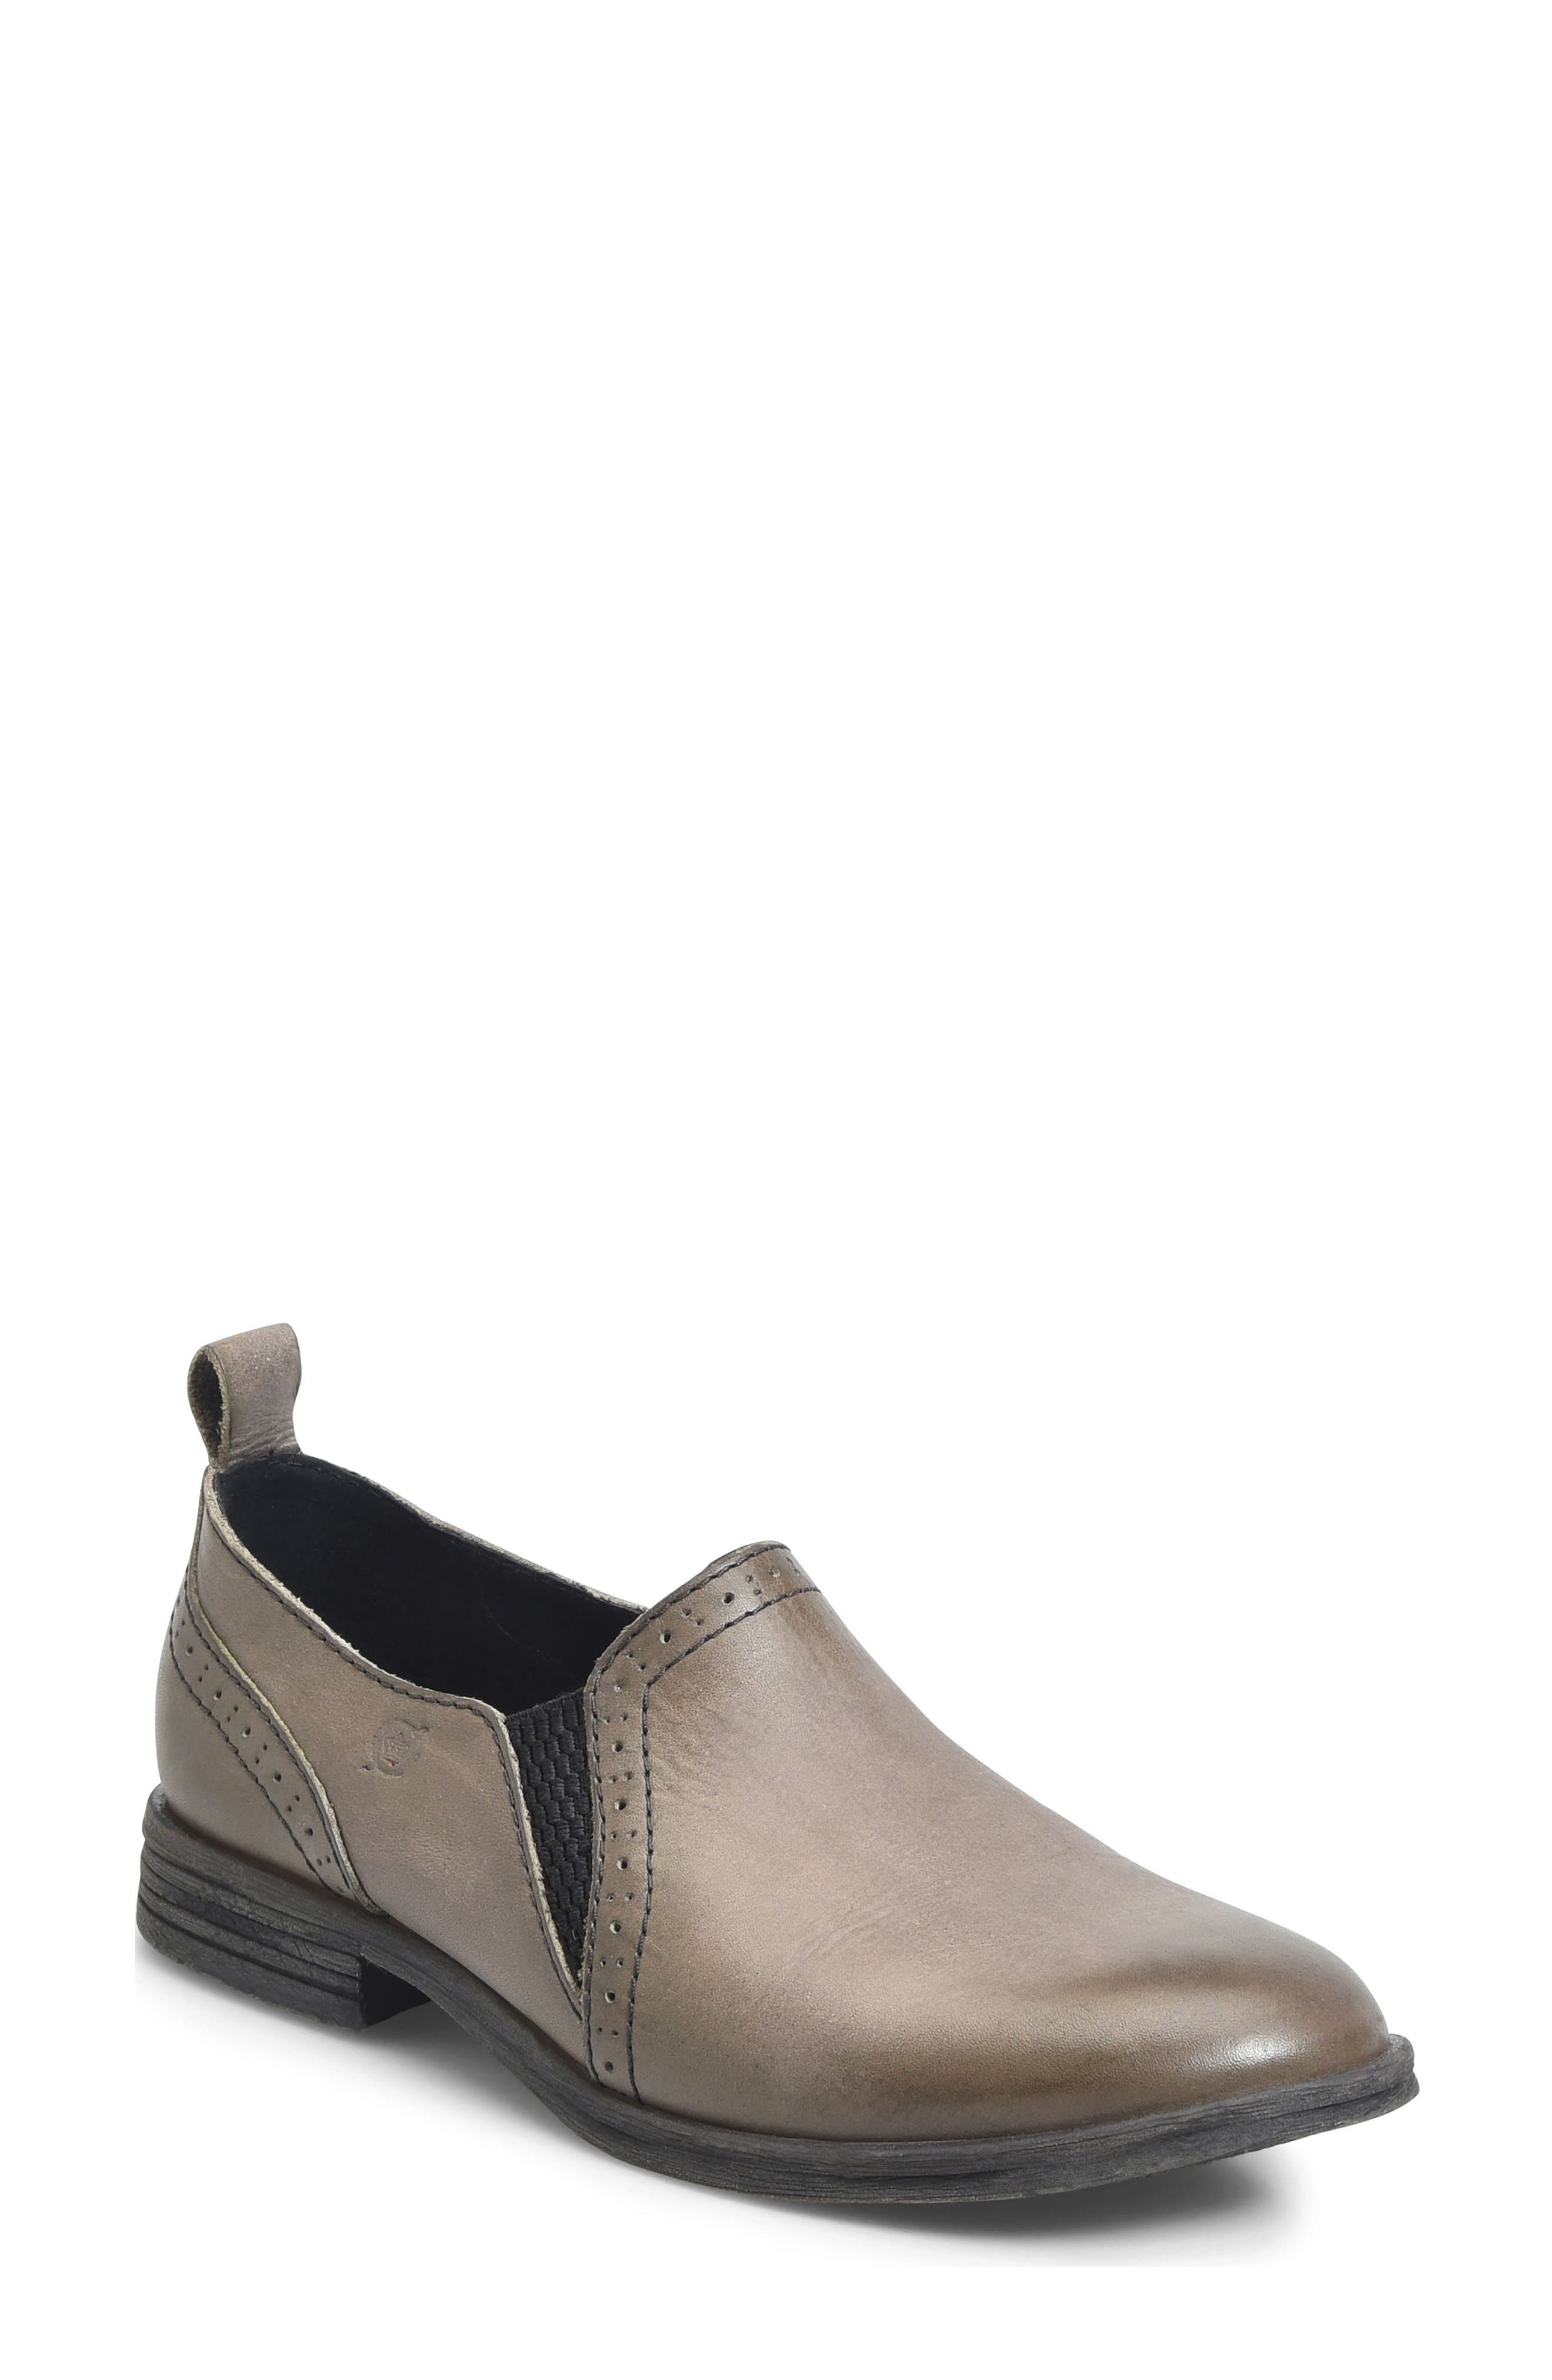 Fable Slip-On,                         Main,                         color, 050